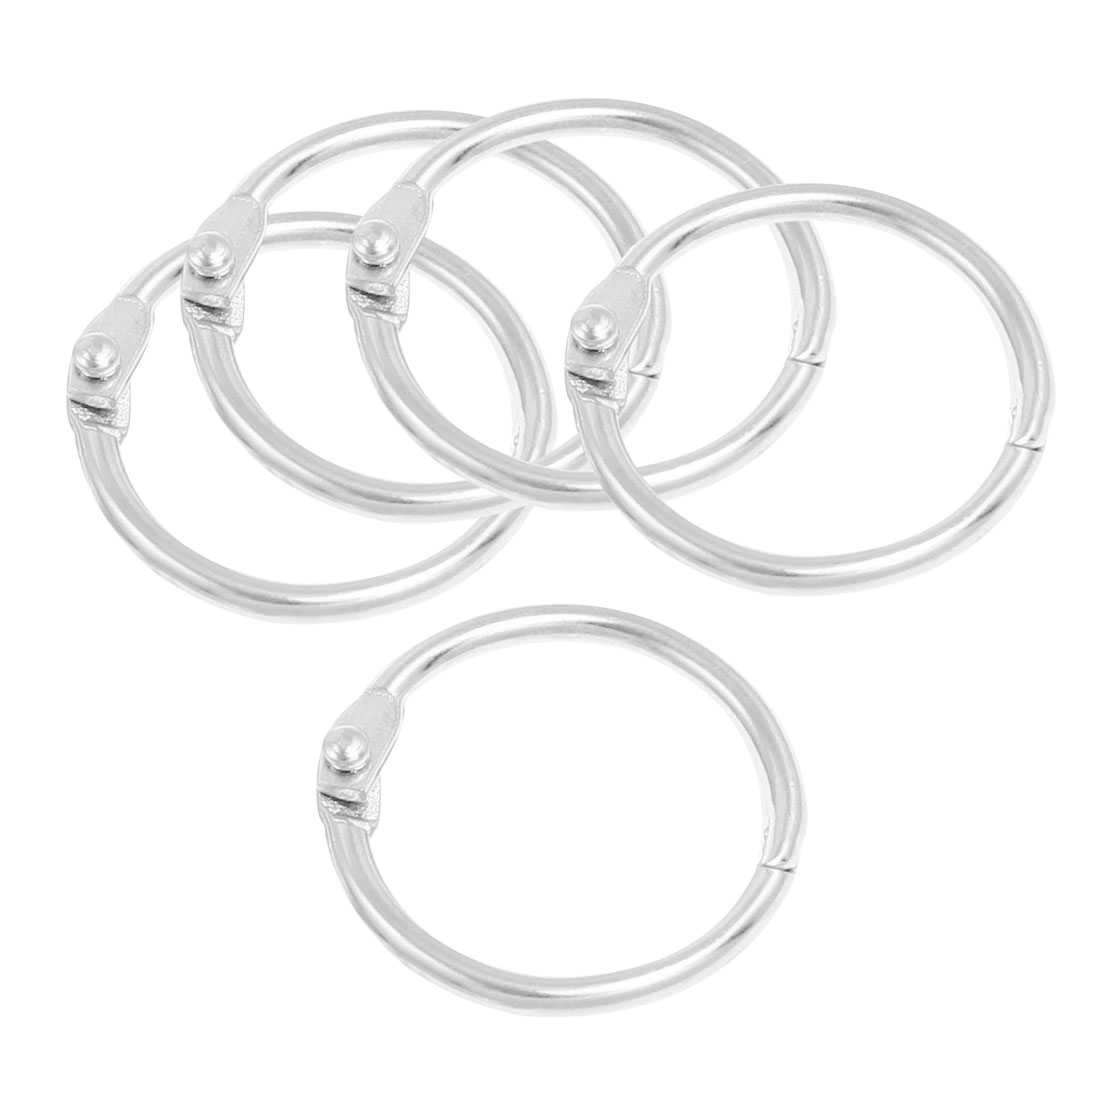 5 x Silver Tone 30mm OD Looseleaf Binder Rings for Scrapbooking Book